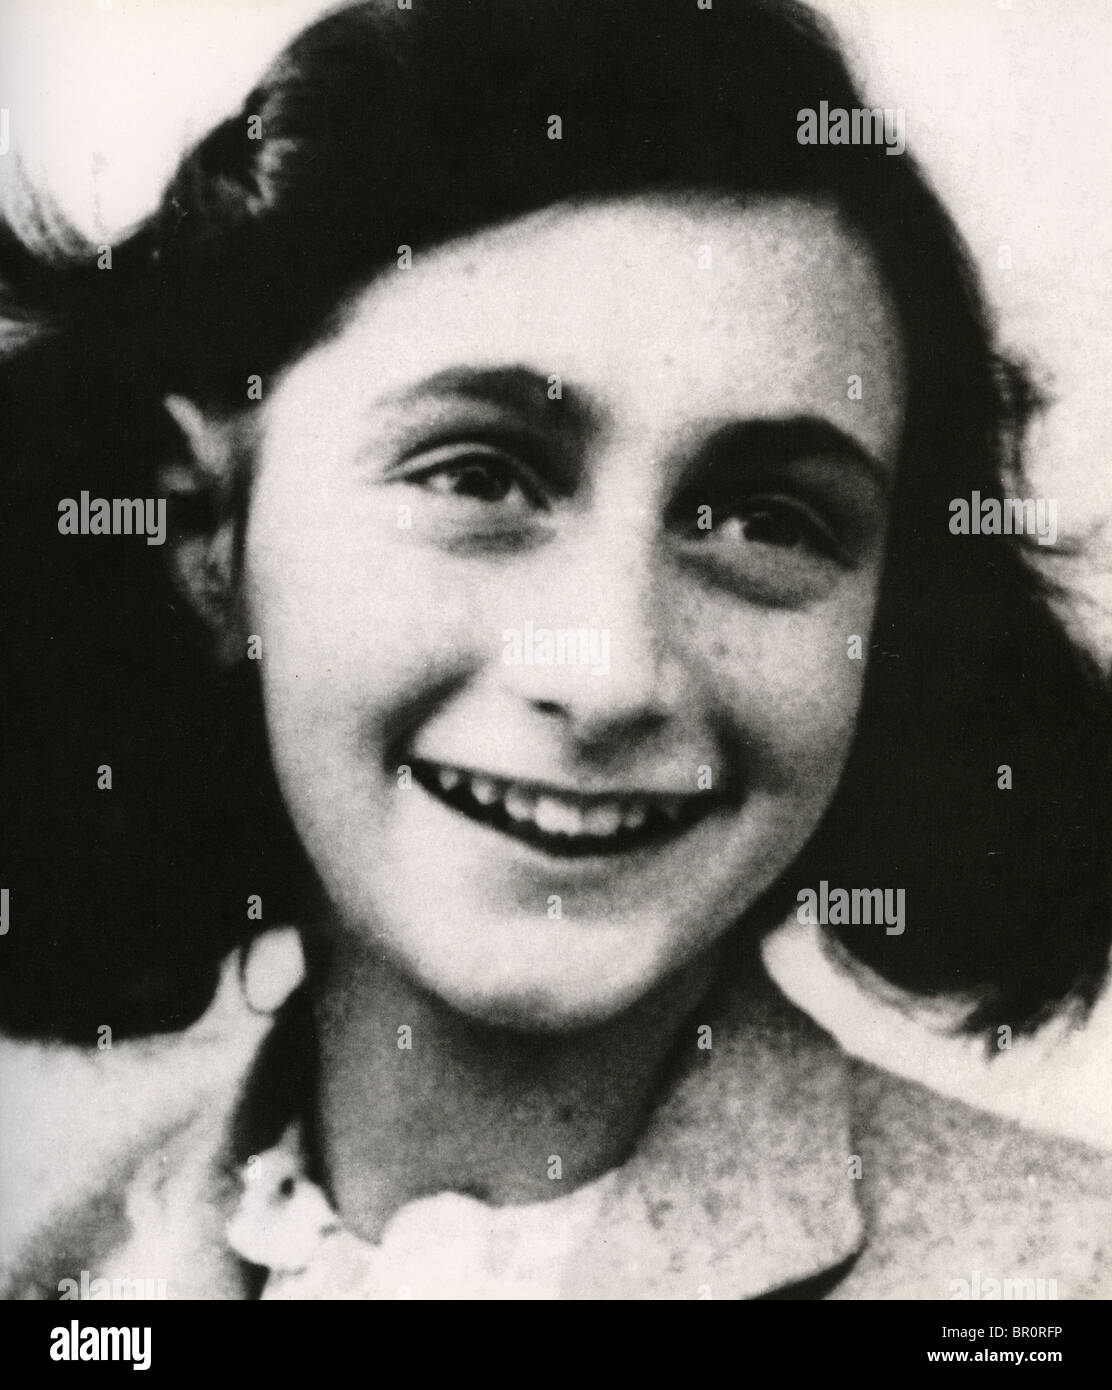 ANNE FRANK (1929-1945), victime de l'holocauste juif néerlandais Photo Stock